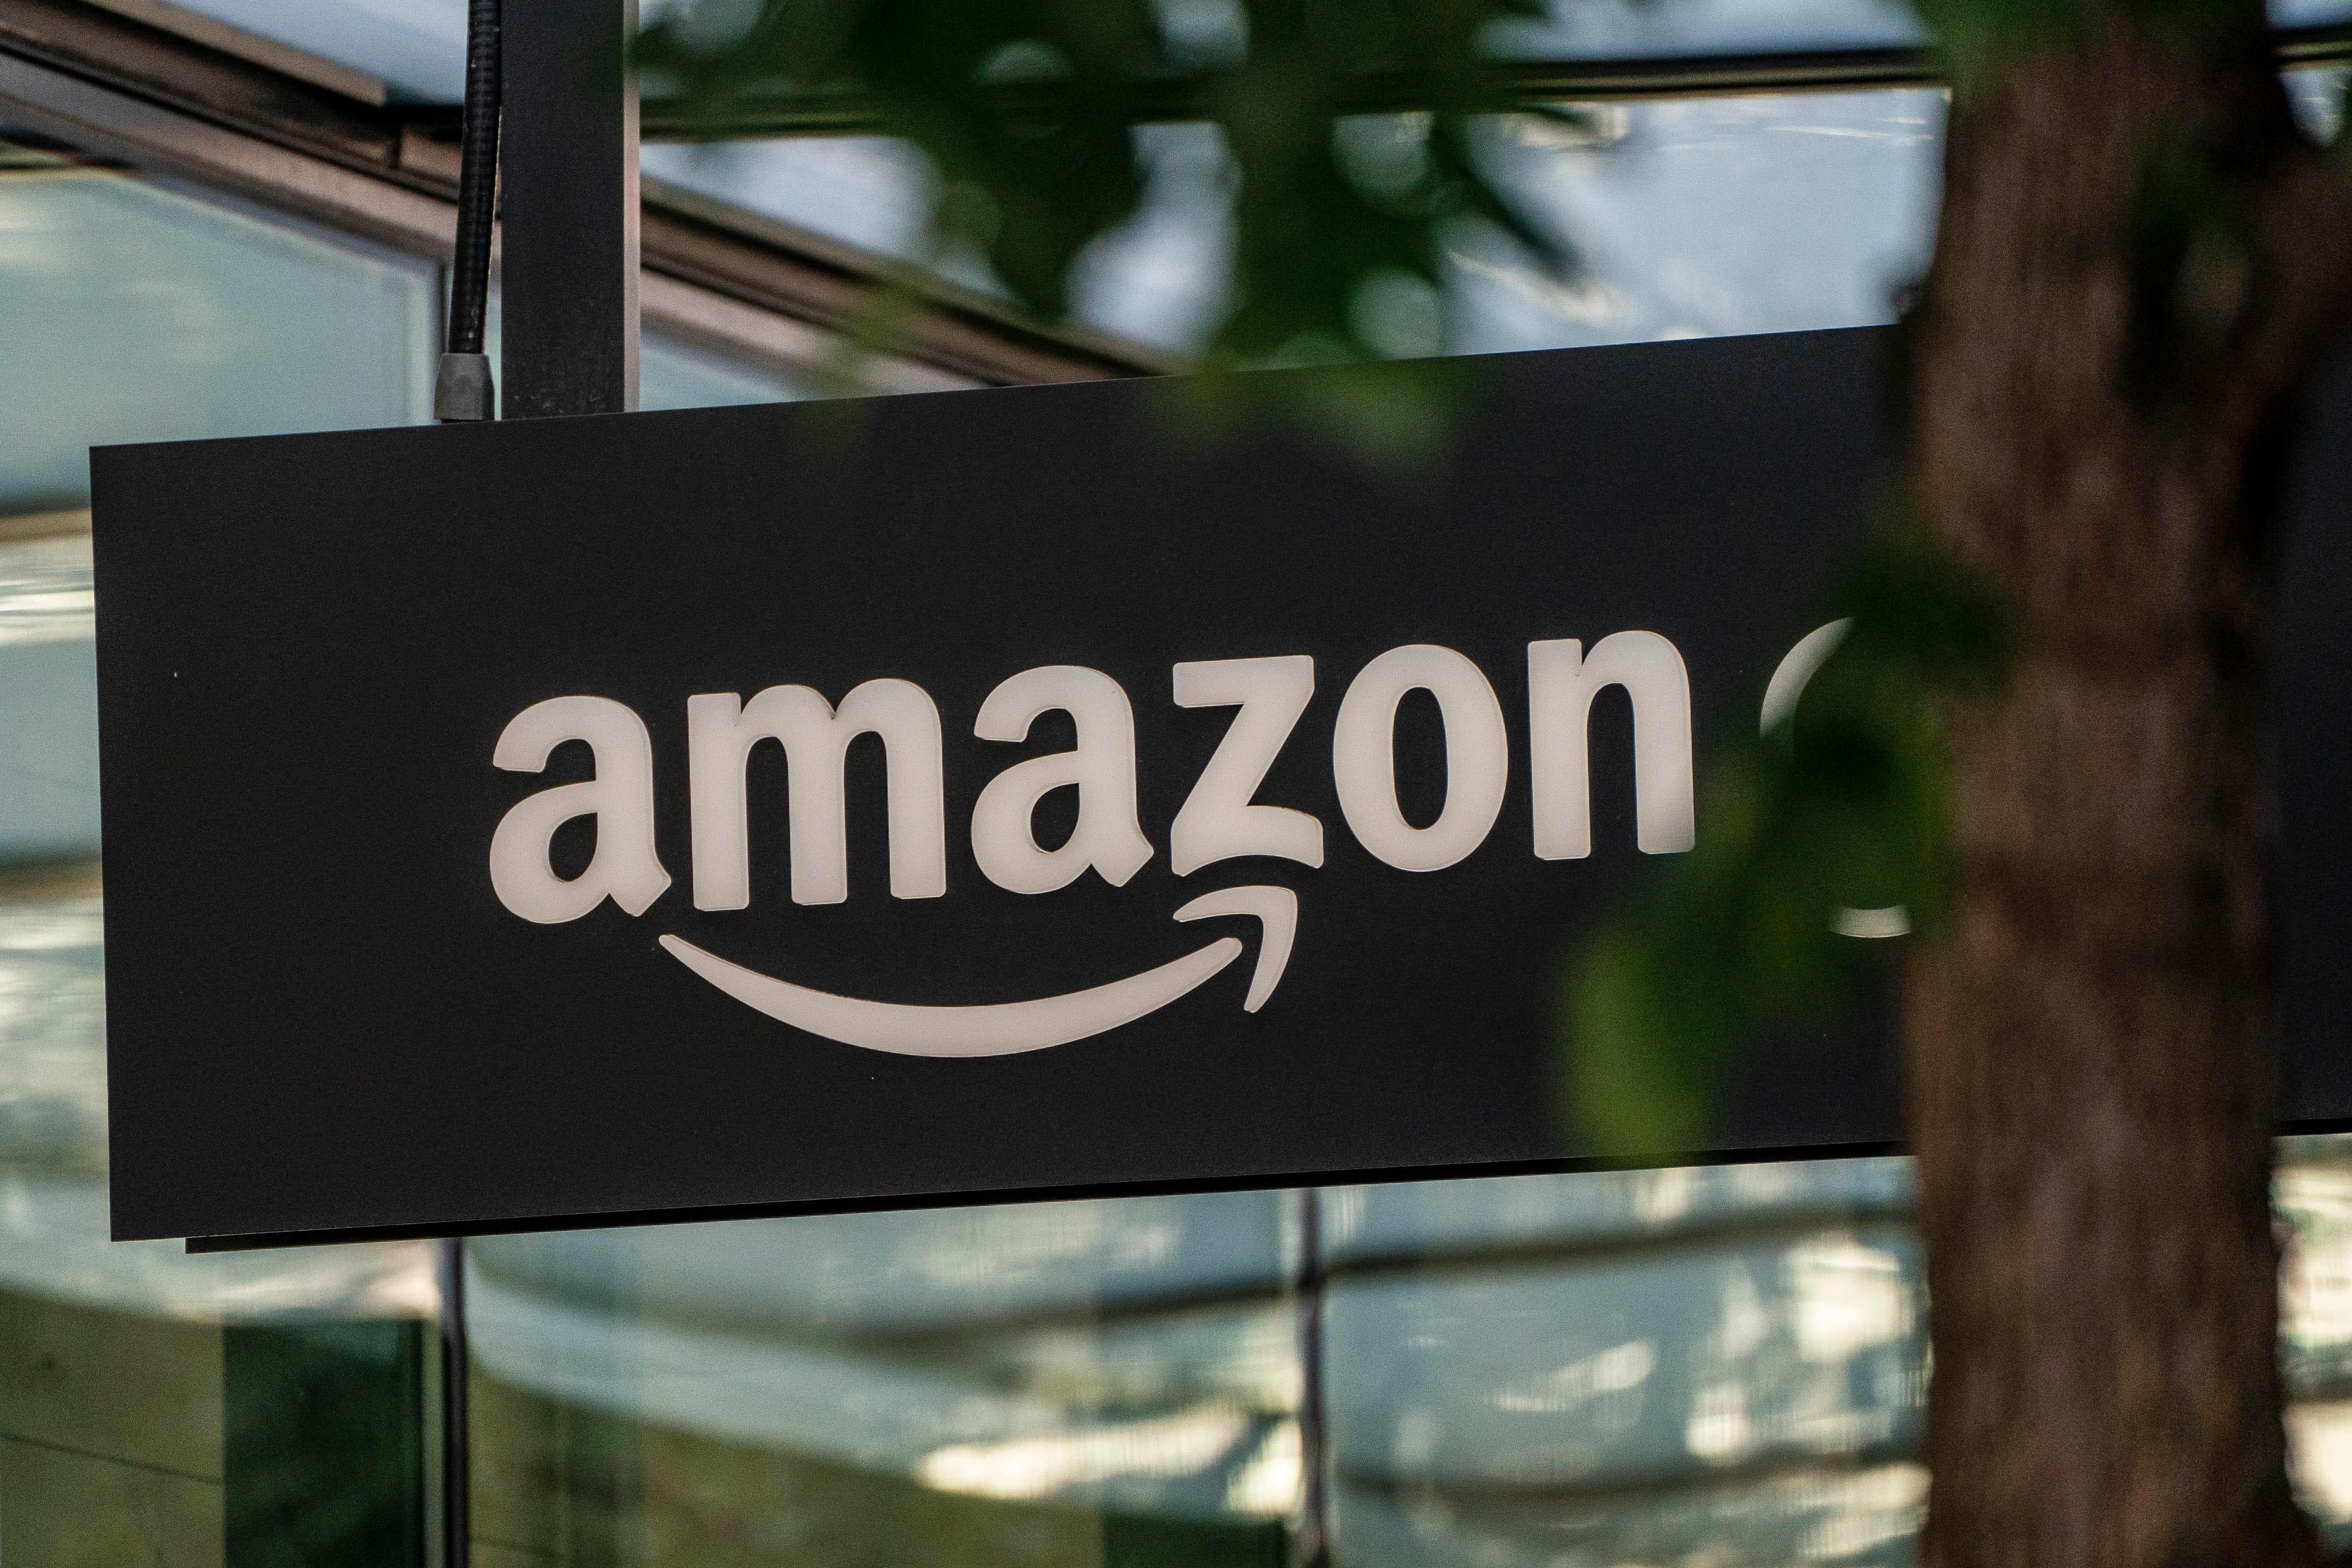 Amazon Prime Day 2021 sale set for June 21-22 with some early deals available, plus how to get a $10 credit